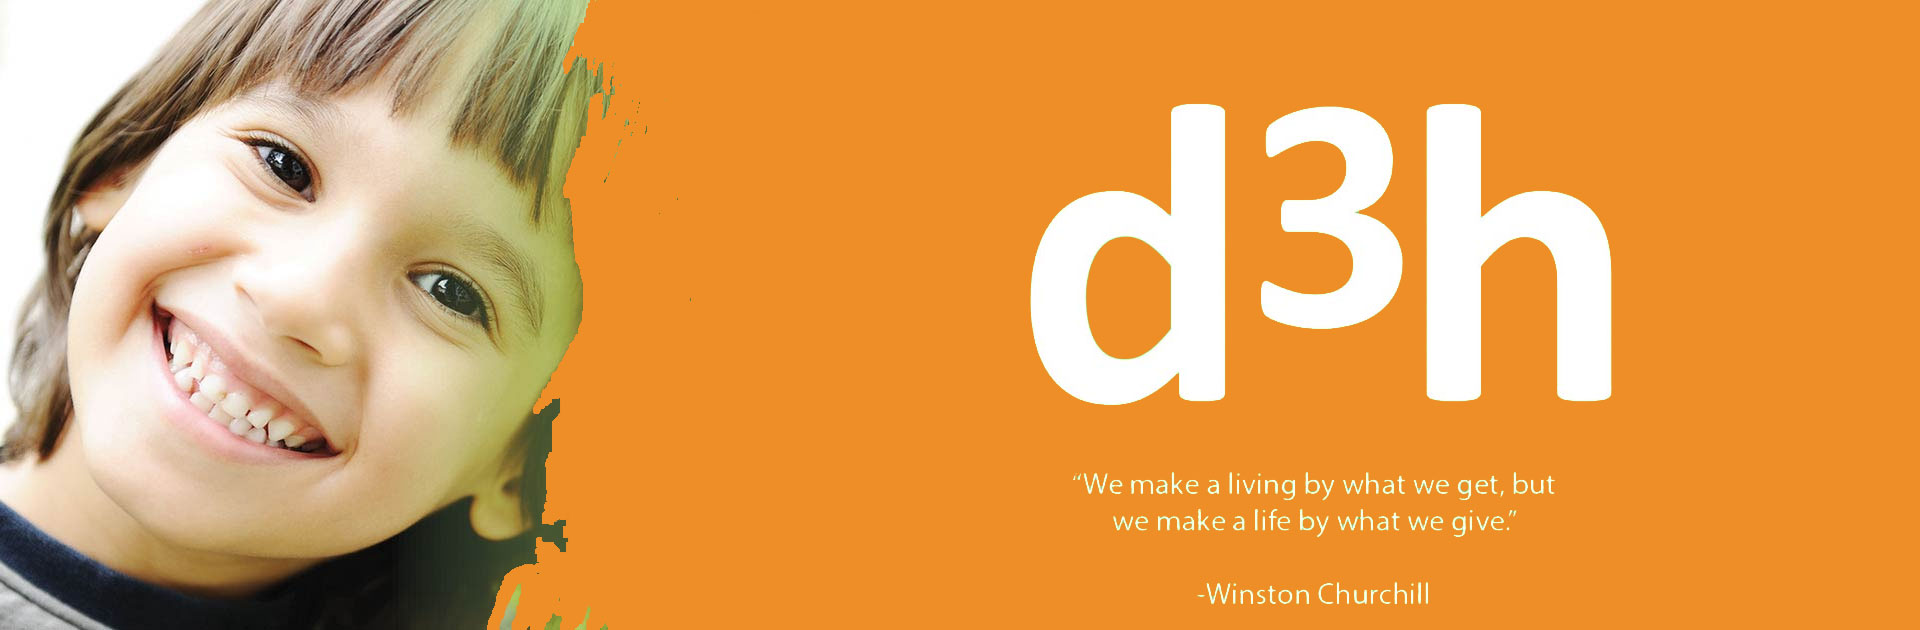 A graphic promoting corporate and social responsibility initiatives of the d3h hotels corporation:  a photo of a young smiling child, the corporate name, d3h in bold white type paired with an immortal quote of Winston Churchill presented against a chartreuse green background, We make a living by what we get, but we make a life by what we give.